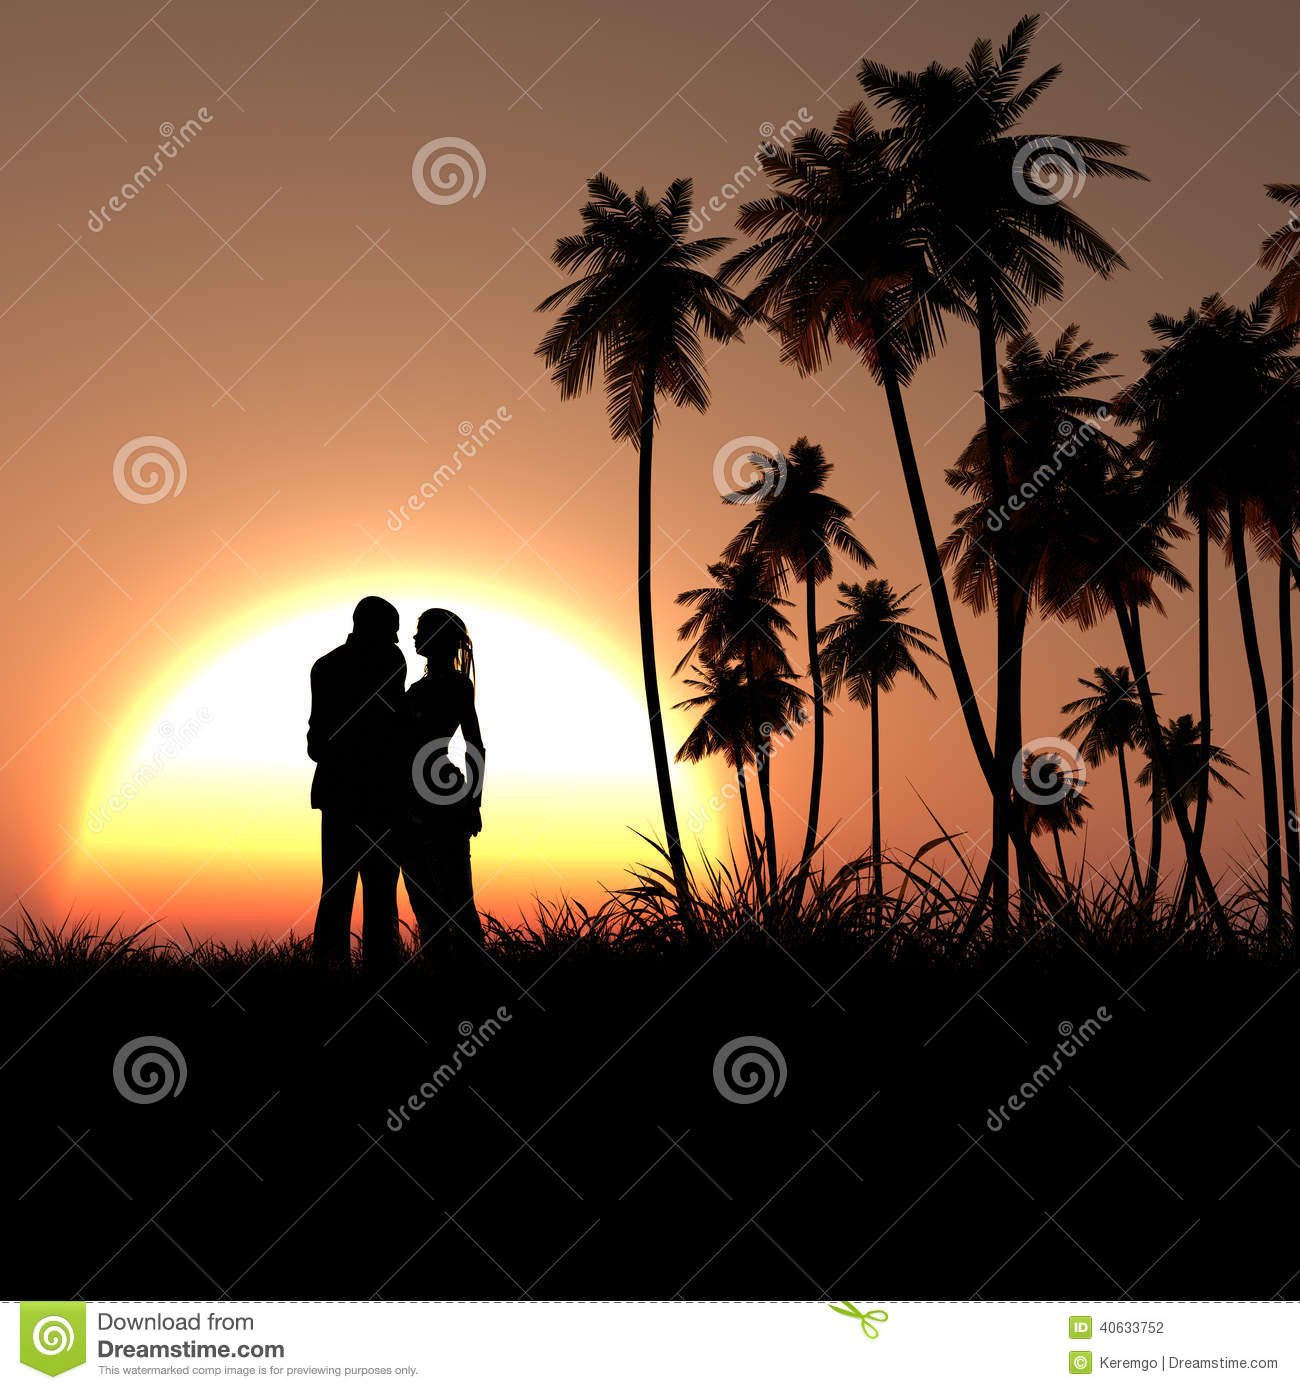 Happy Couple Sitting On Sandy Beach Embracing Kissing: Romantic Couple Silhouette In Tropic Sunset Stock